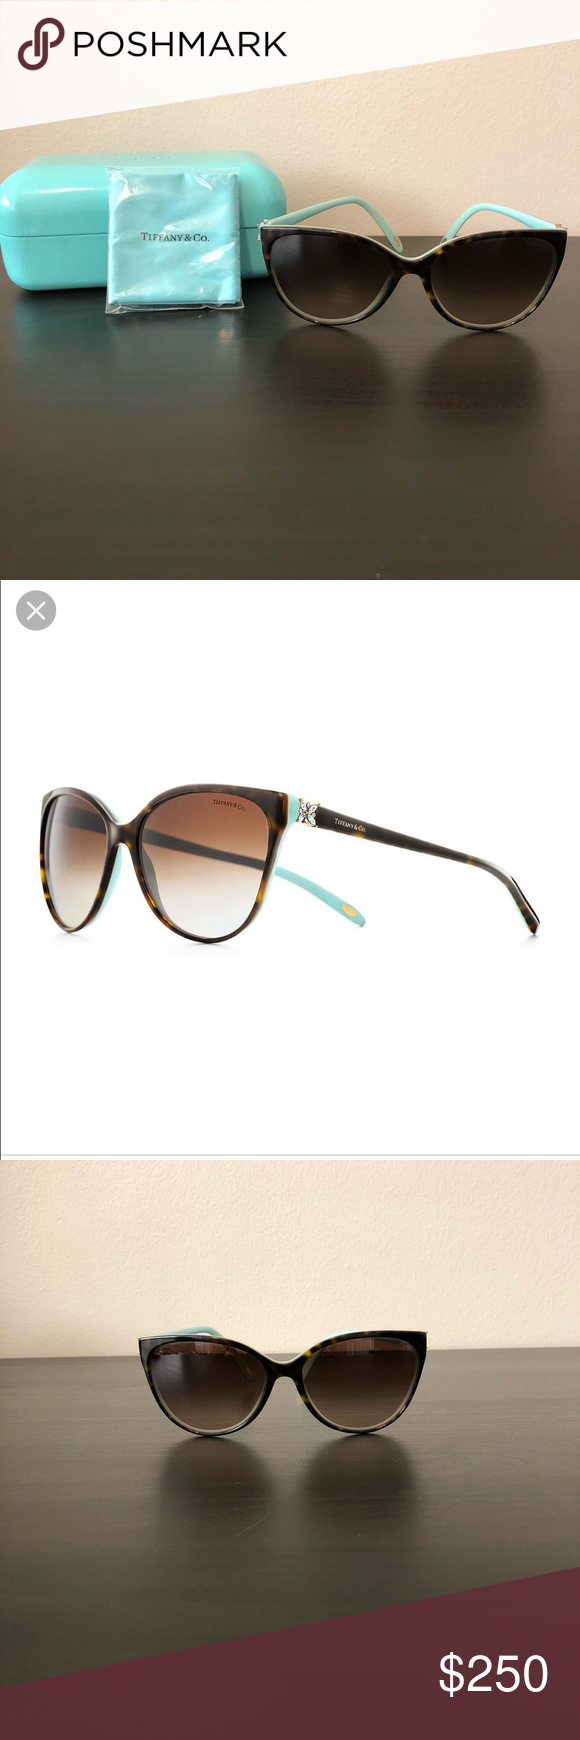 456463b5160 Tiffany Victoria Cat Eye Sunglasses • Like new • Comes with case and new  lens cloth • 100% authentic Tiffany   Co. Accessories Sunglasses